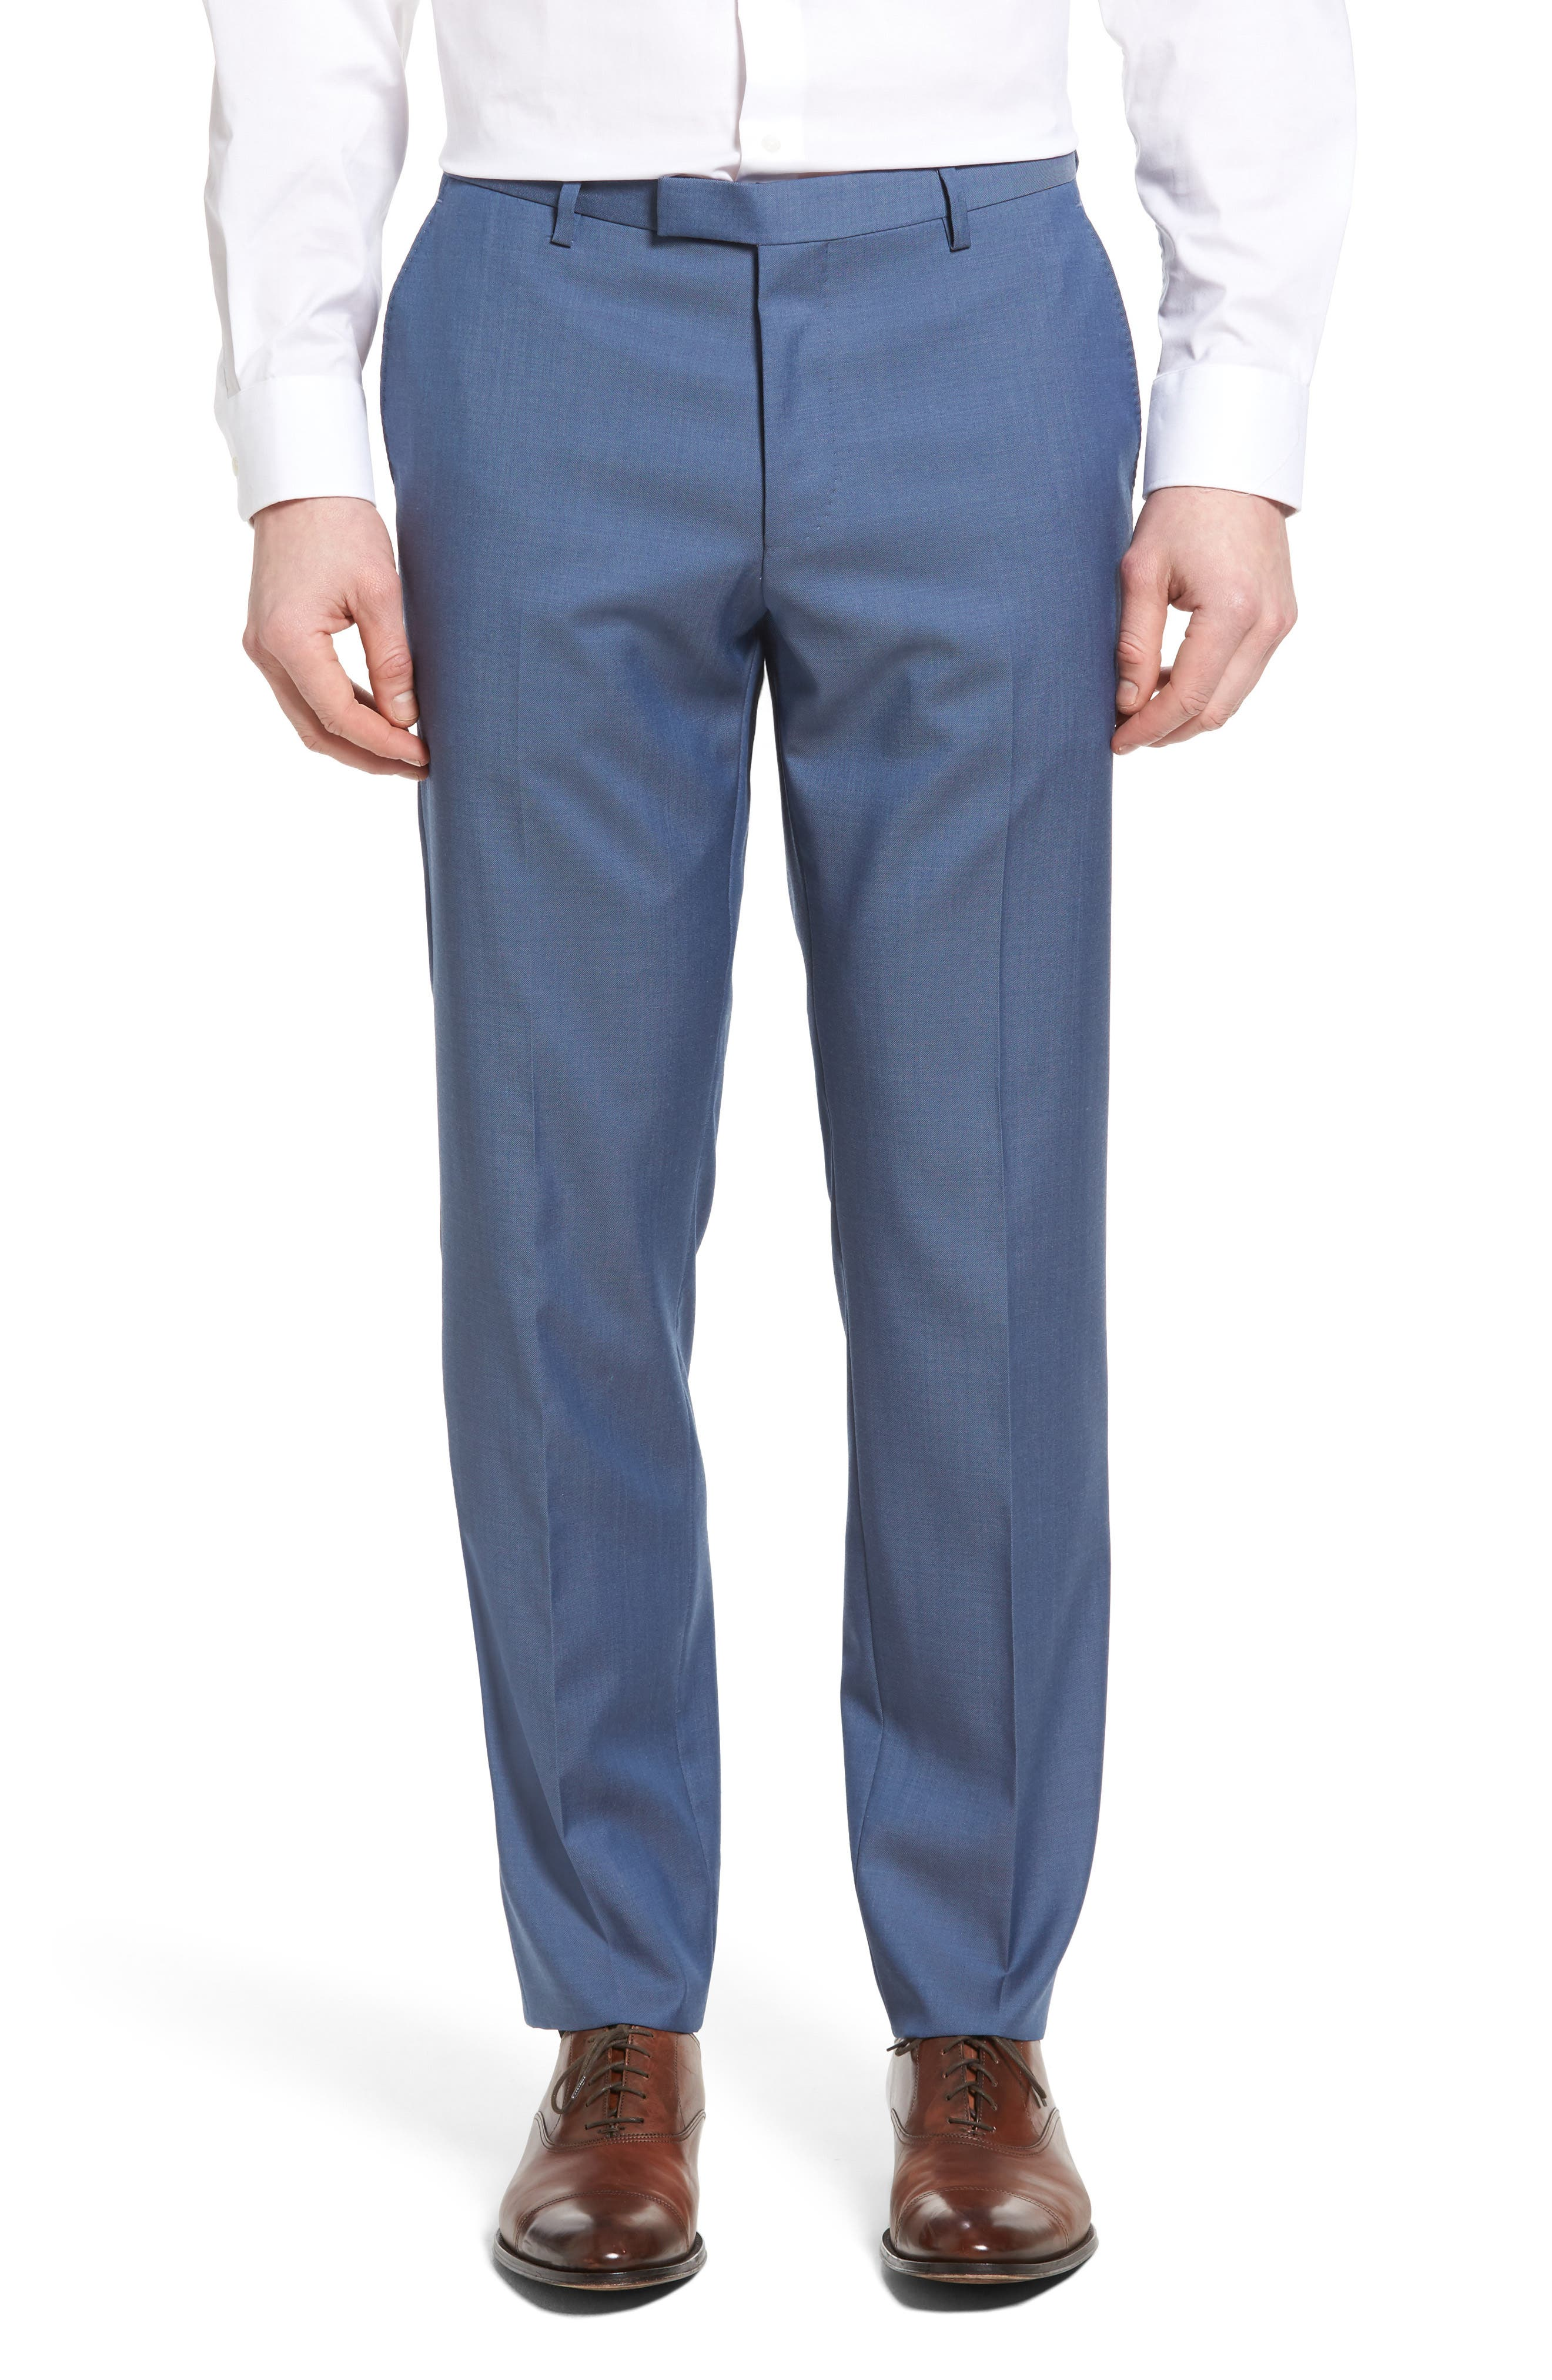 Leenon Flat Front Regular Fit Solid Wool Trousers,                             Main thumbnail 1, color,                             Light Blue